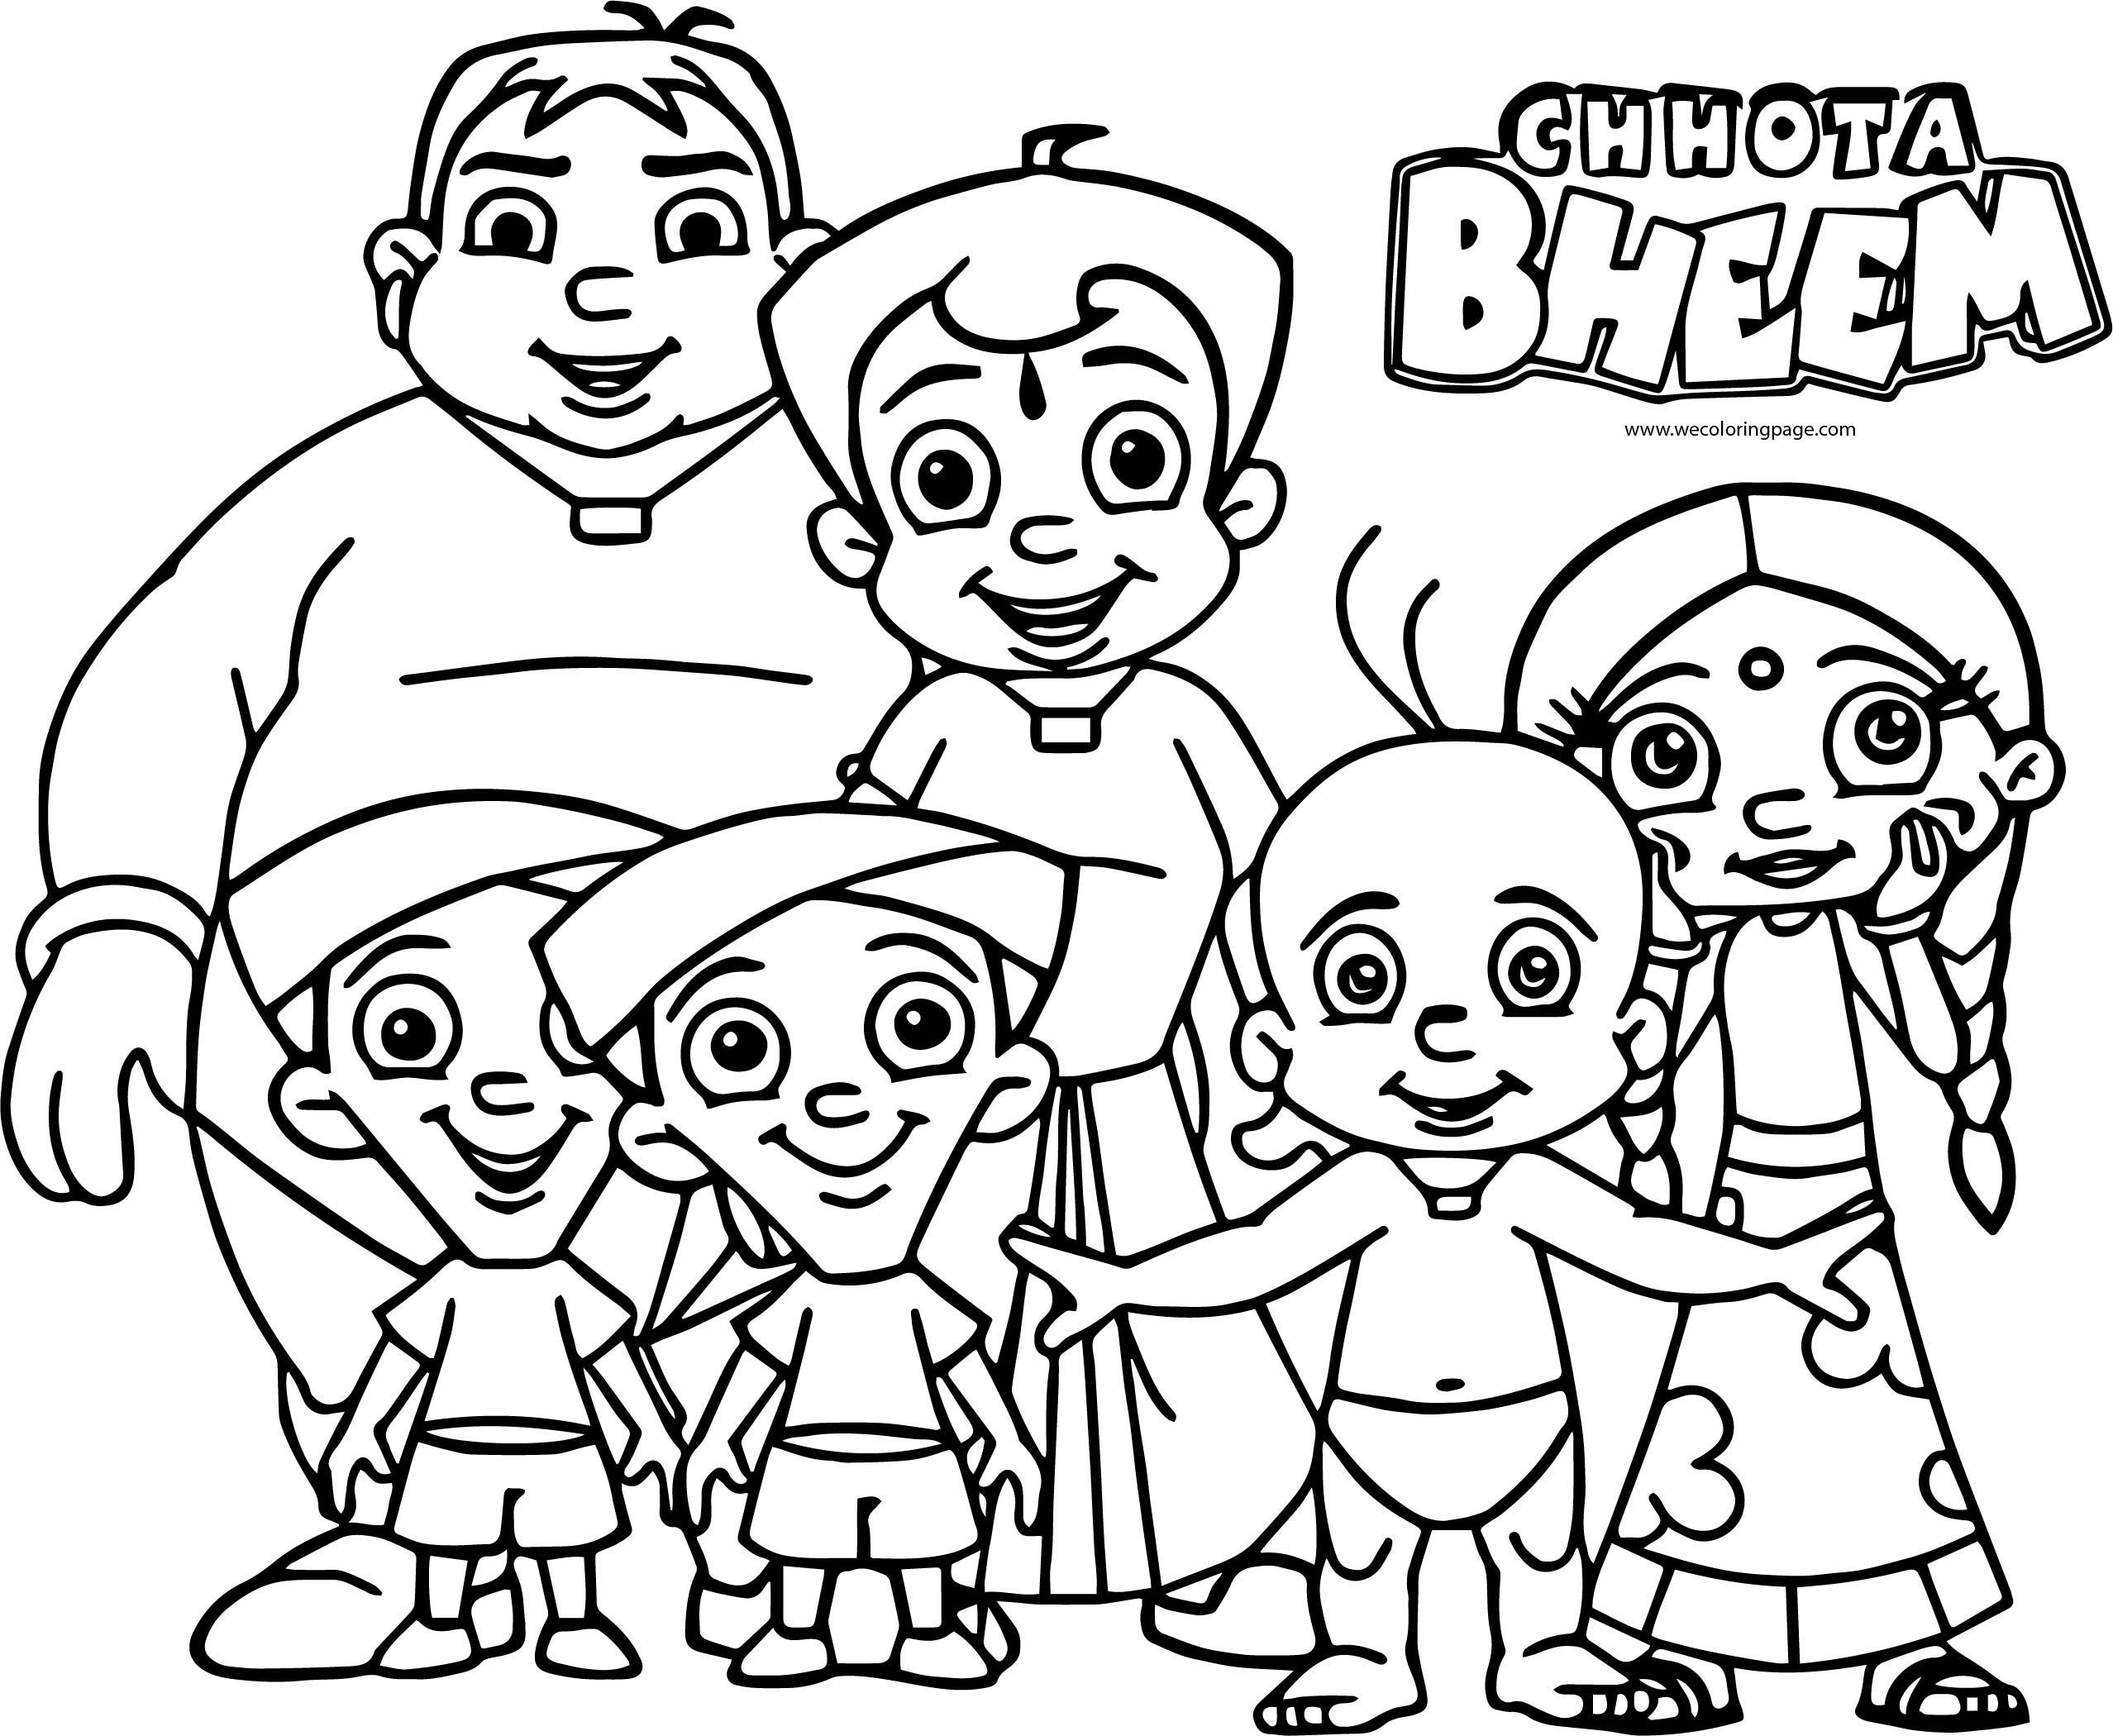 Chhota Bheem Friends Camera Photo Picture Coloring Page